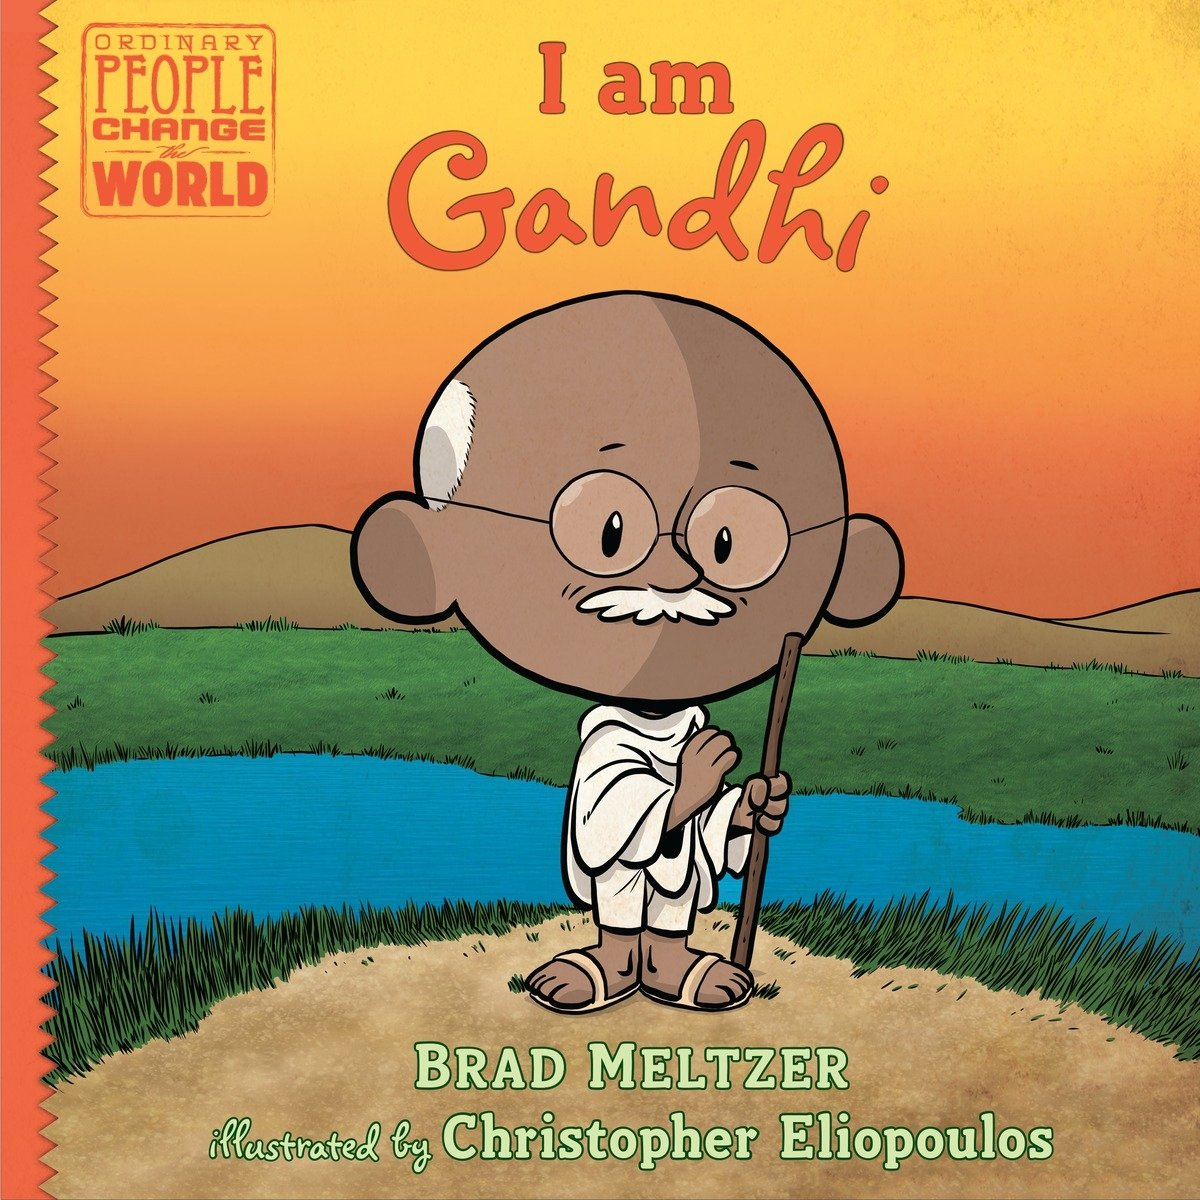 I am Gandhi (Ordinary People Change the World) by Dial Books (Image #1)